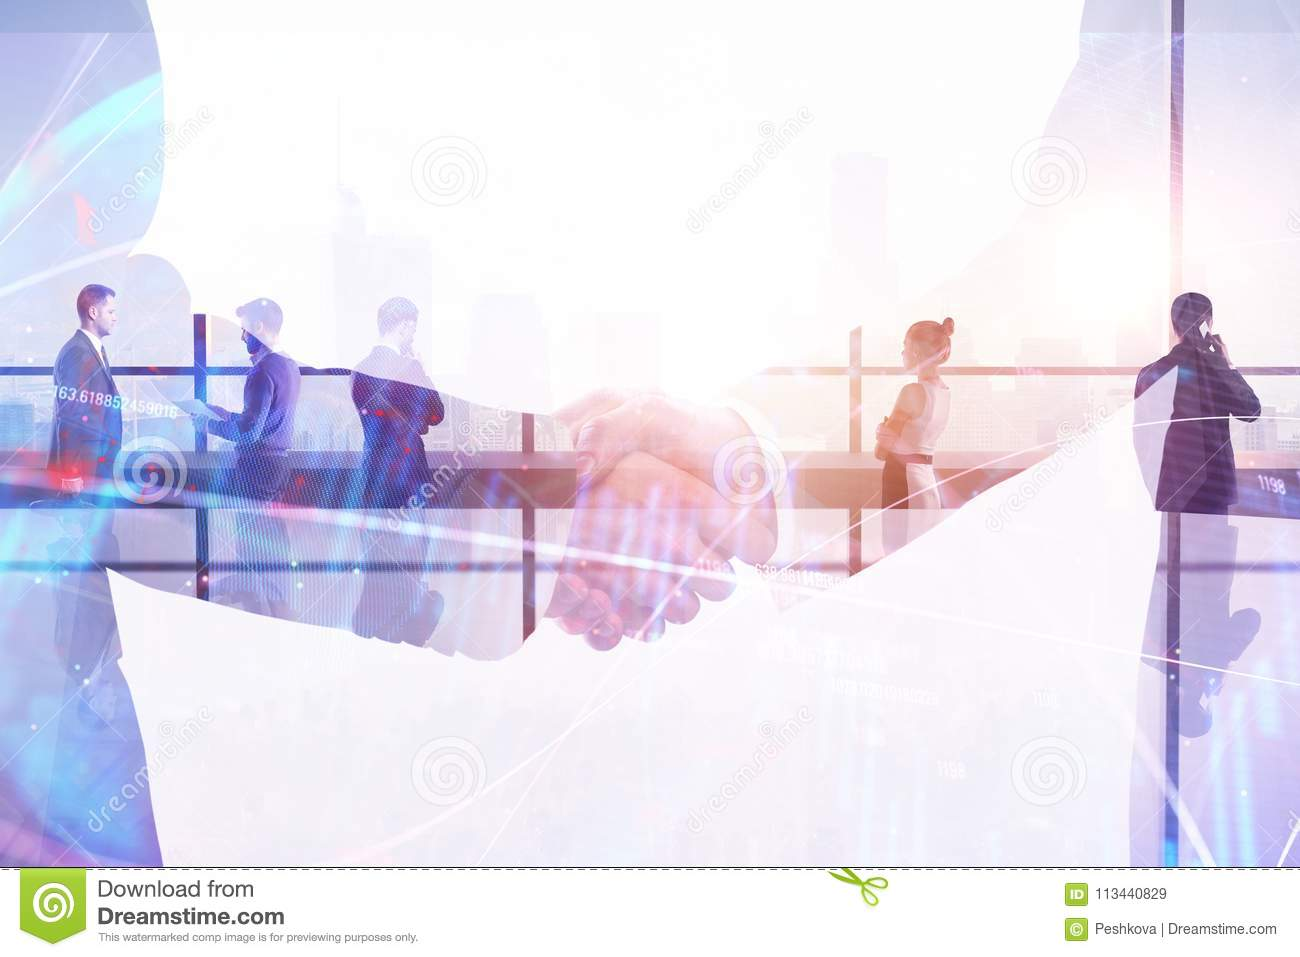 Handshake on abstract forex wallpaper. Teamwork and finance concept. Double exposure